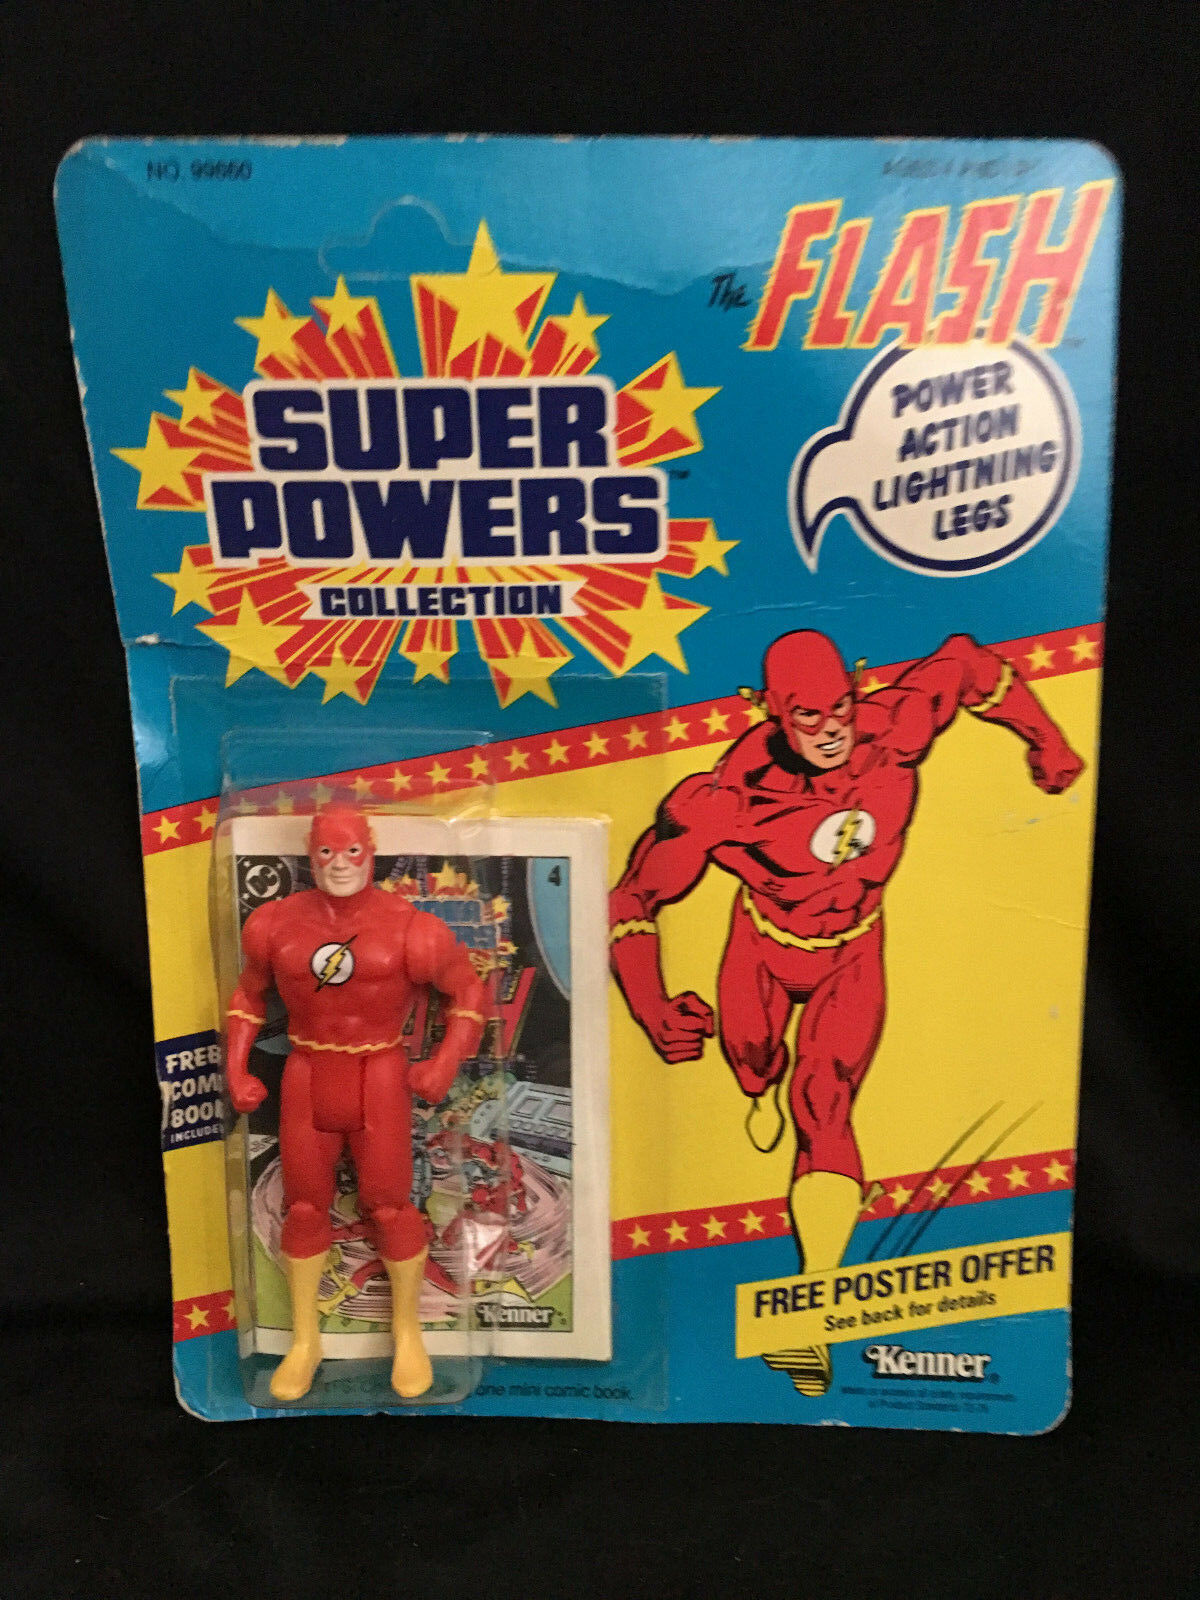 Kenner Super Powers Action Figures The Flash